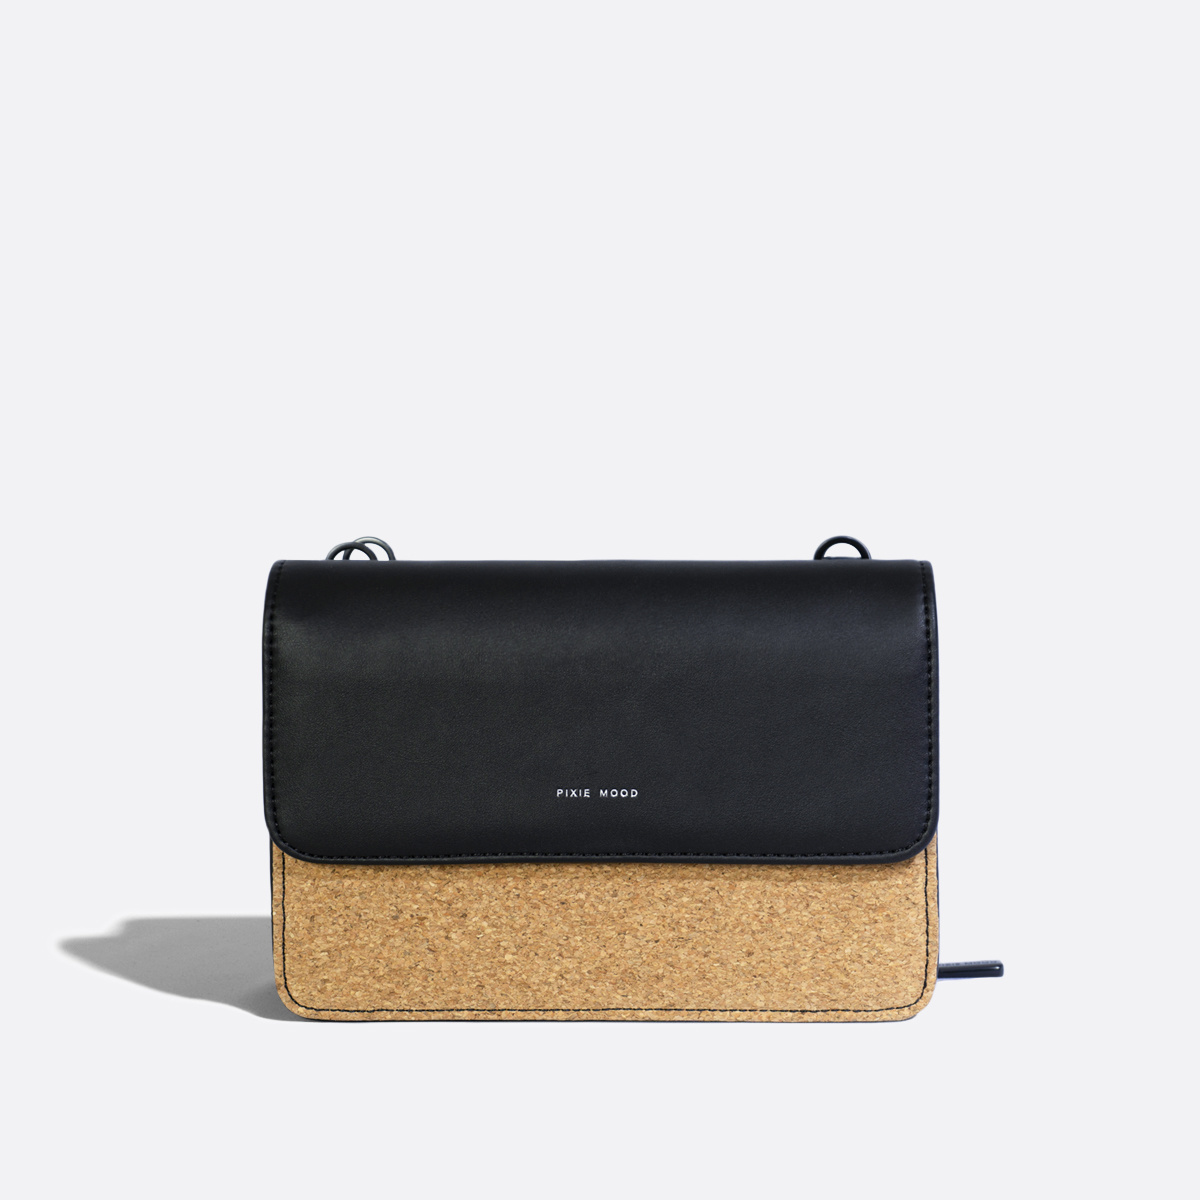 Jane 2 in 1 Wallet Purse Black Cork